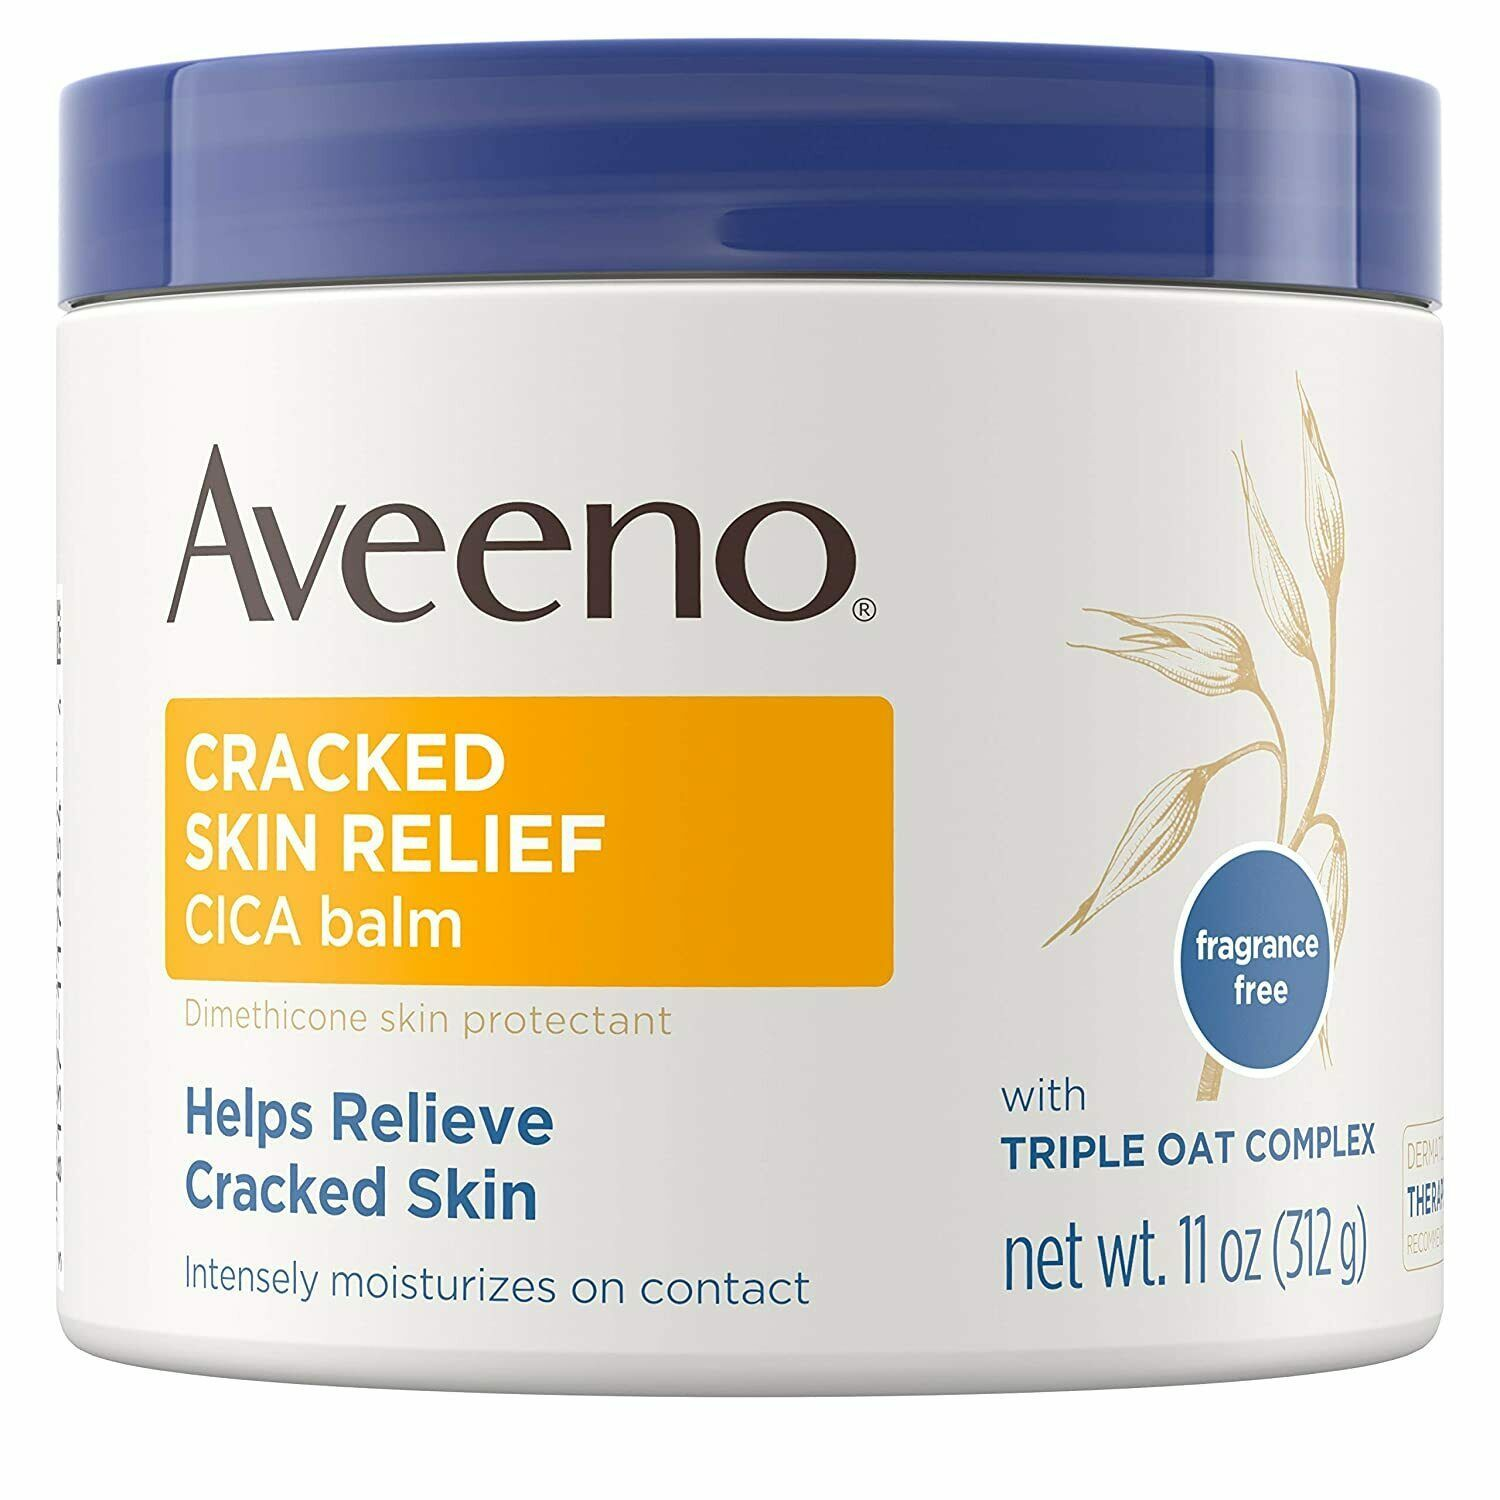 Aveeno Cracked Skin Relief CICA Balm Fragrance Free Triple Oat Complex 11oz - $15.95